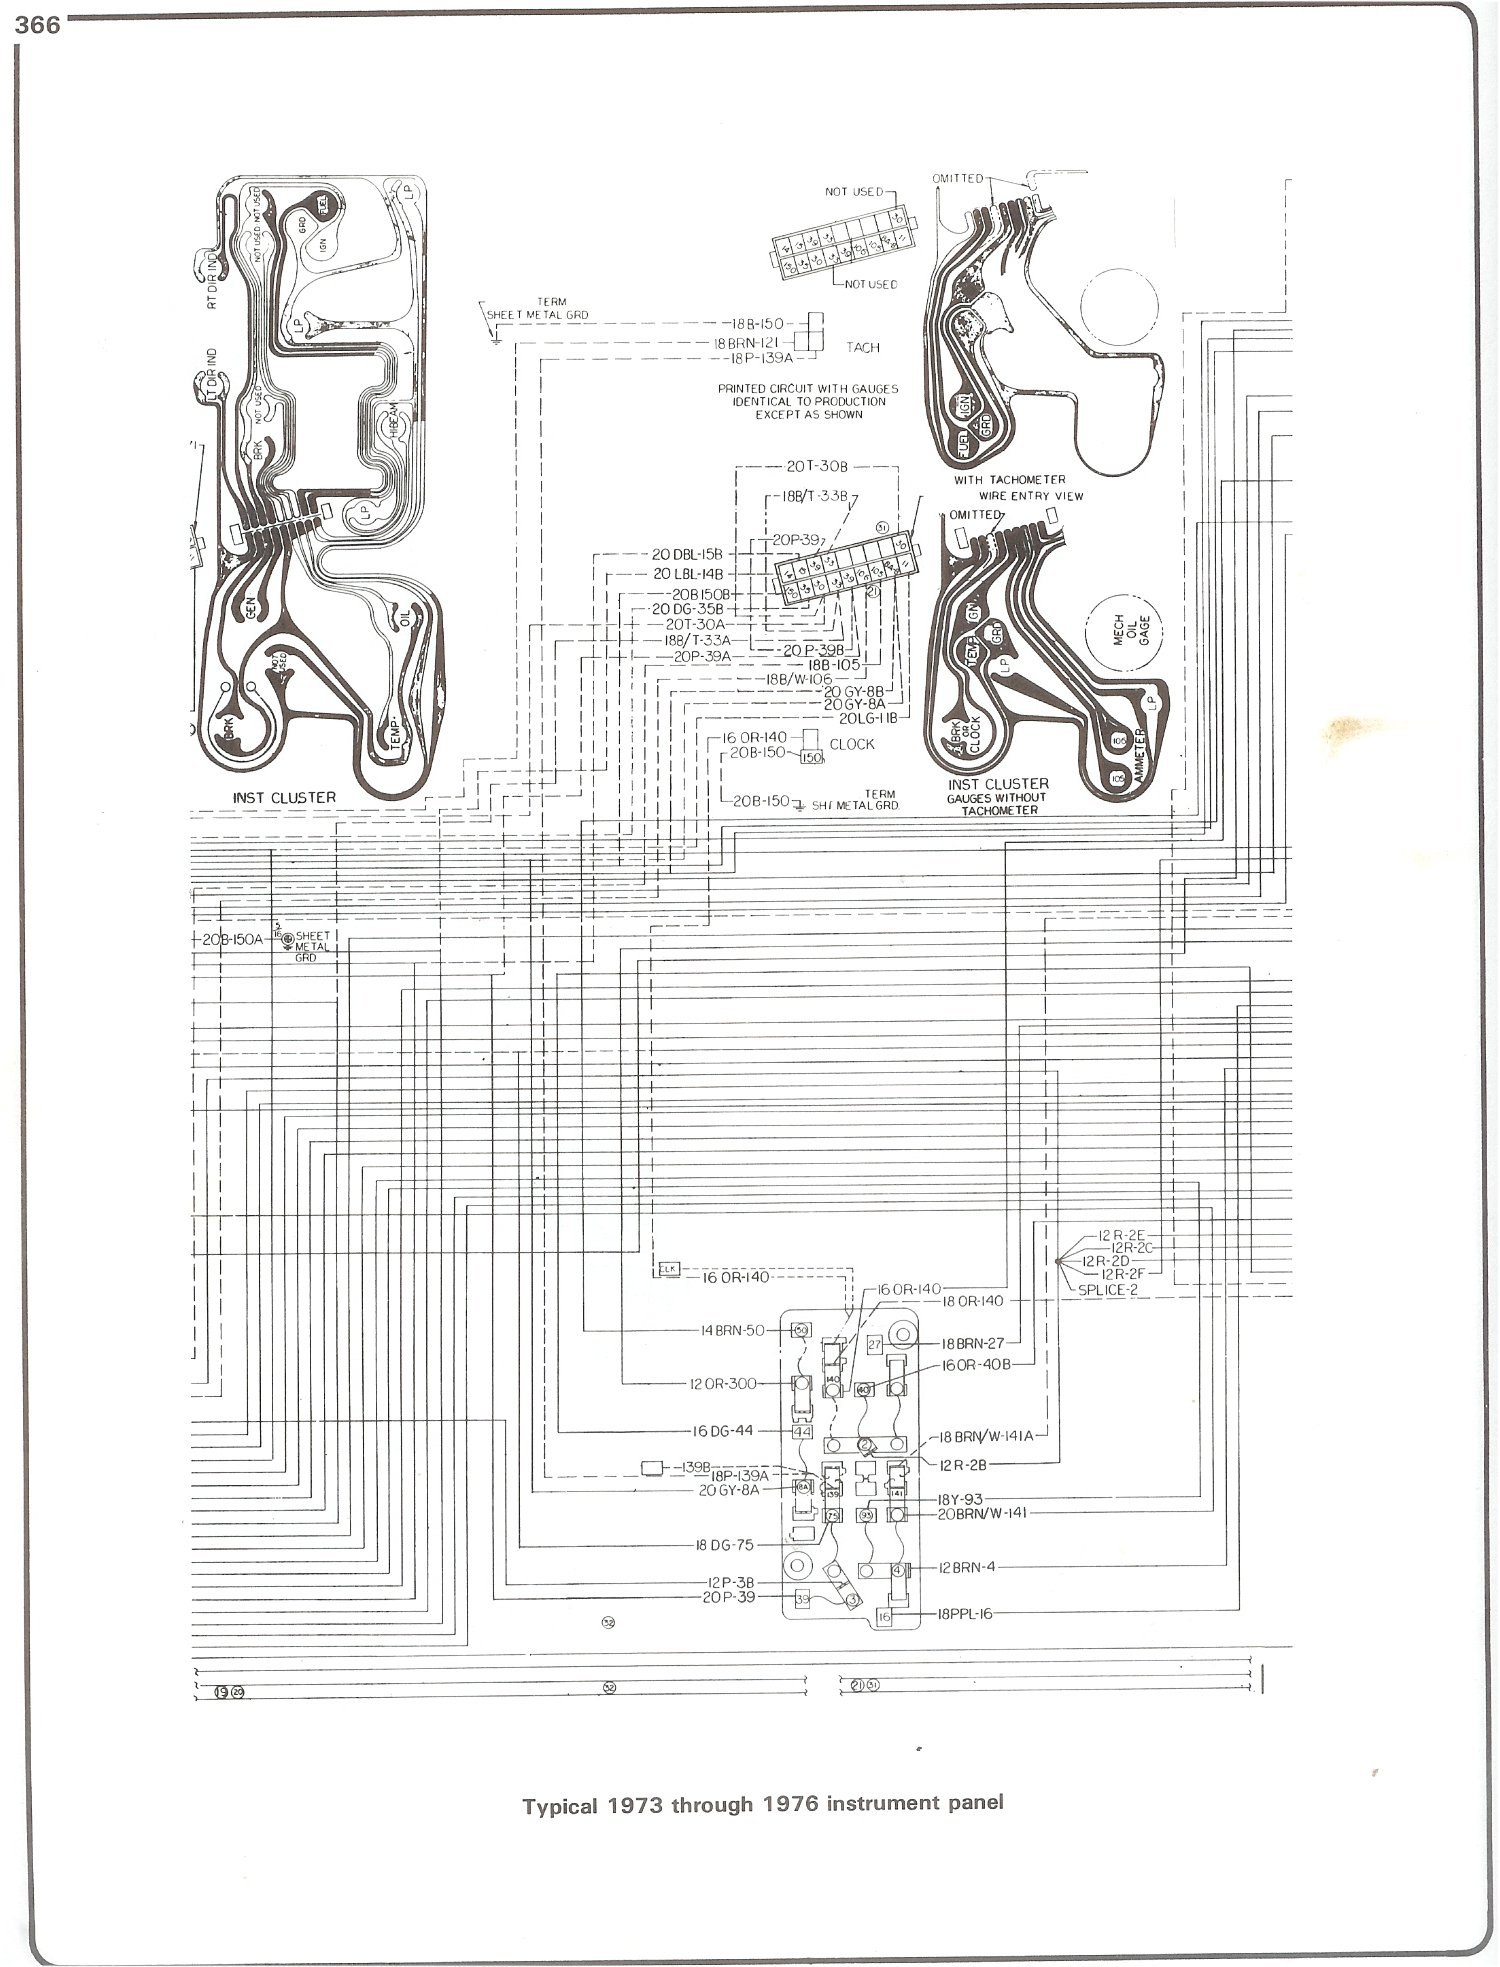 73 87 Chevy Wiring Diagrams Site